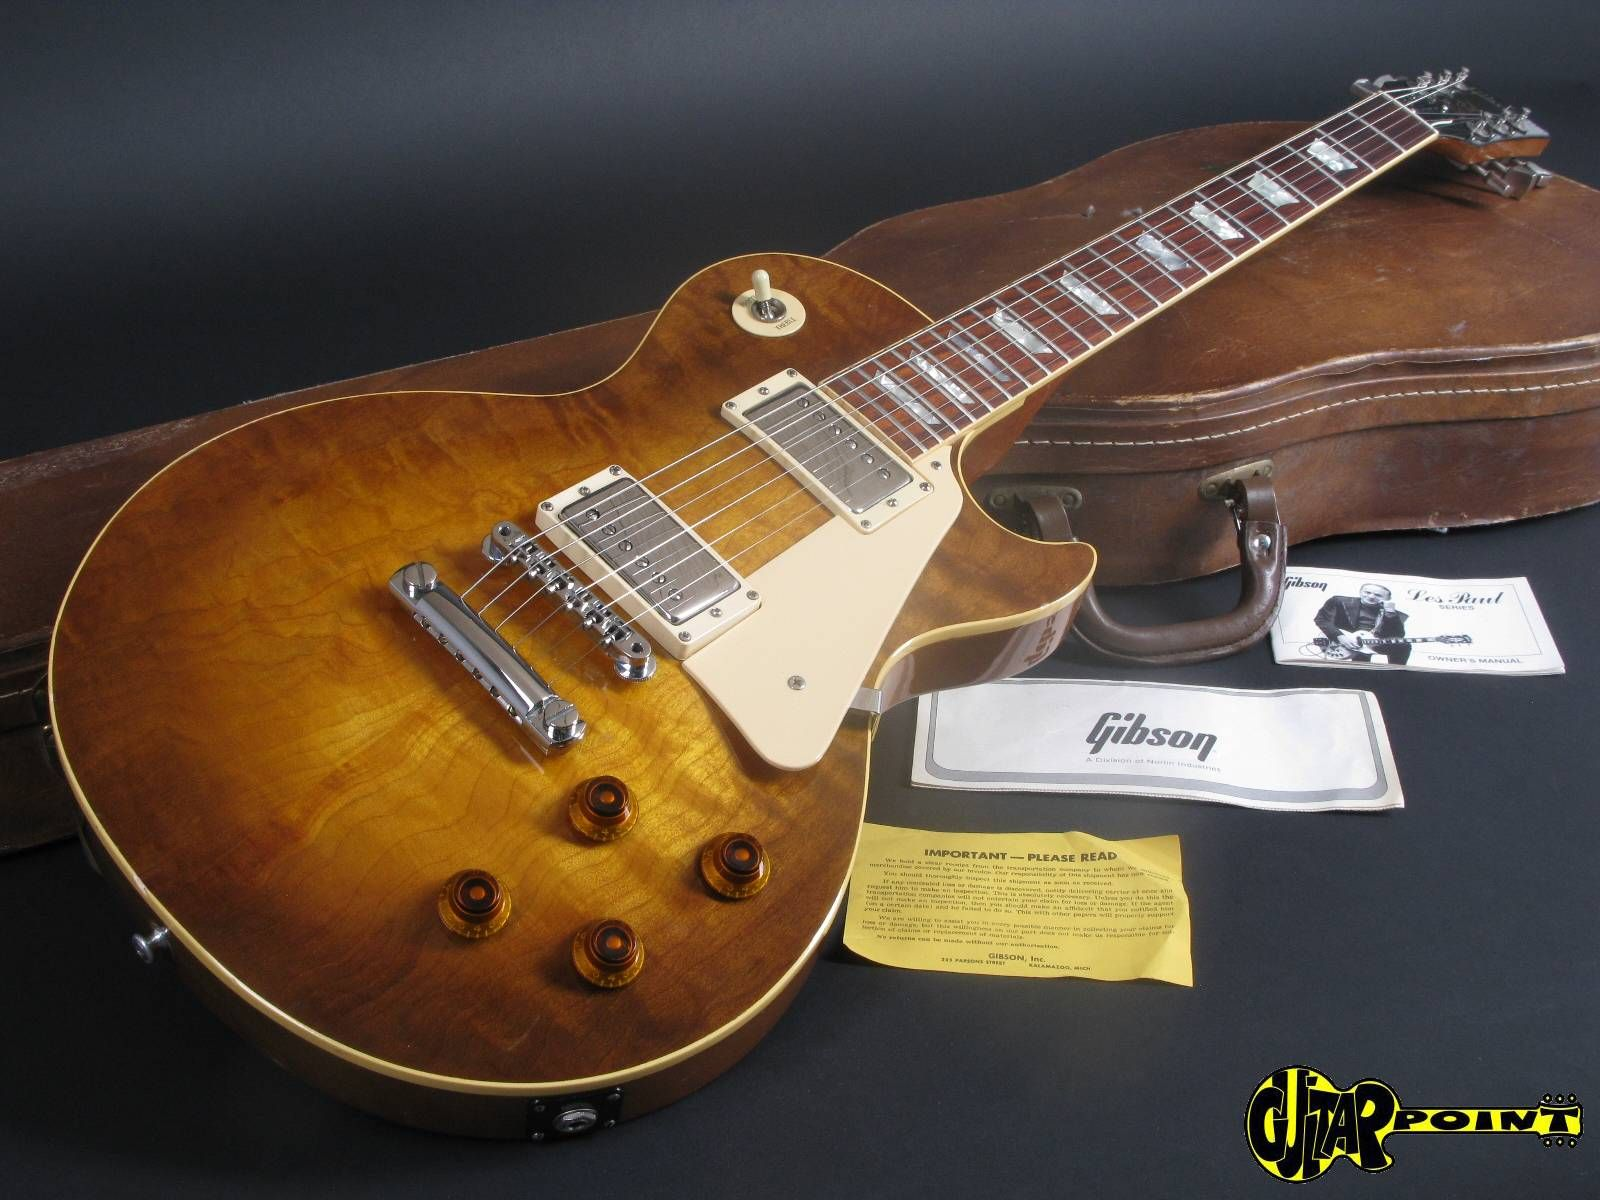 gibson les paul honeyburst - Google Search   Cool Daddy ...